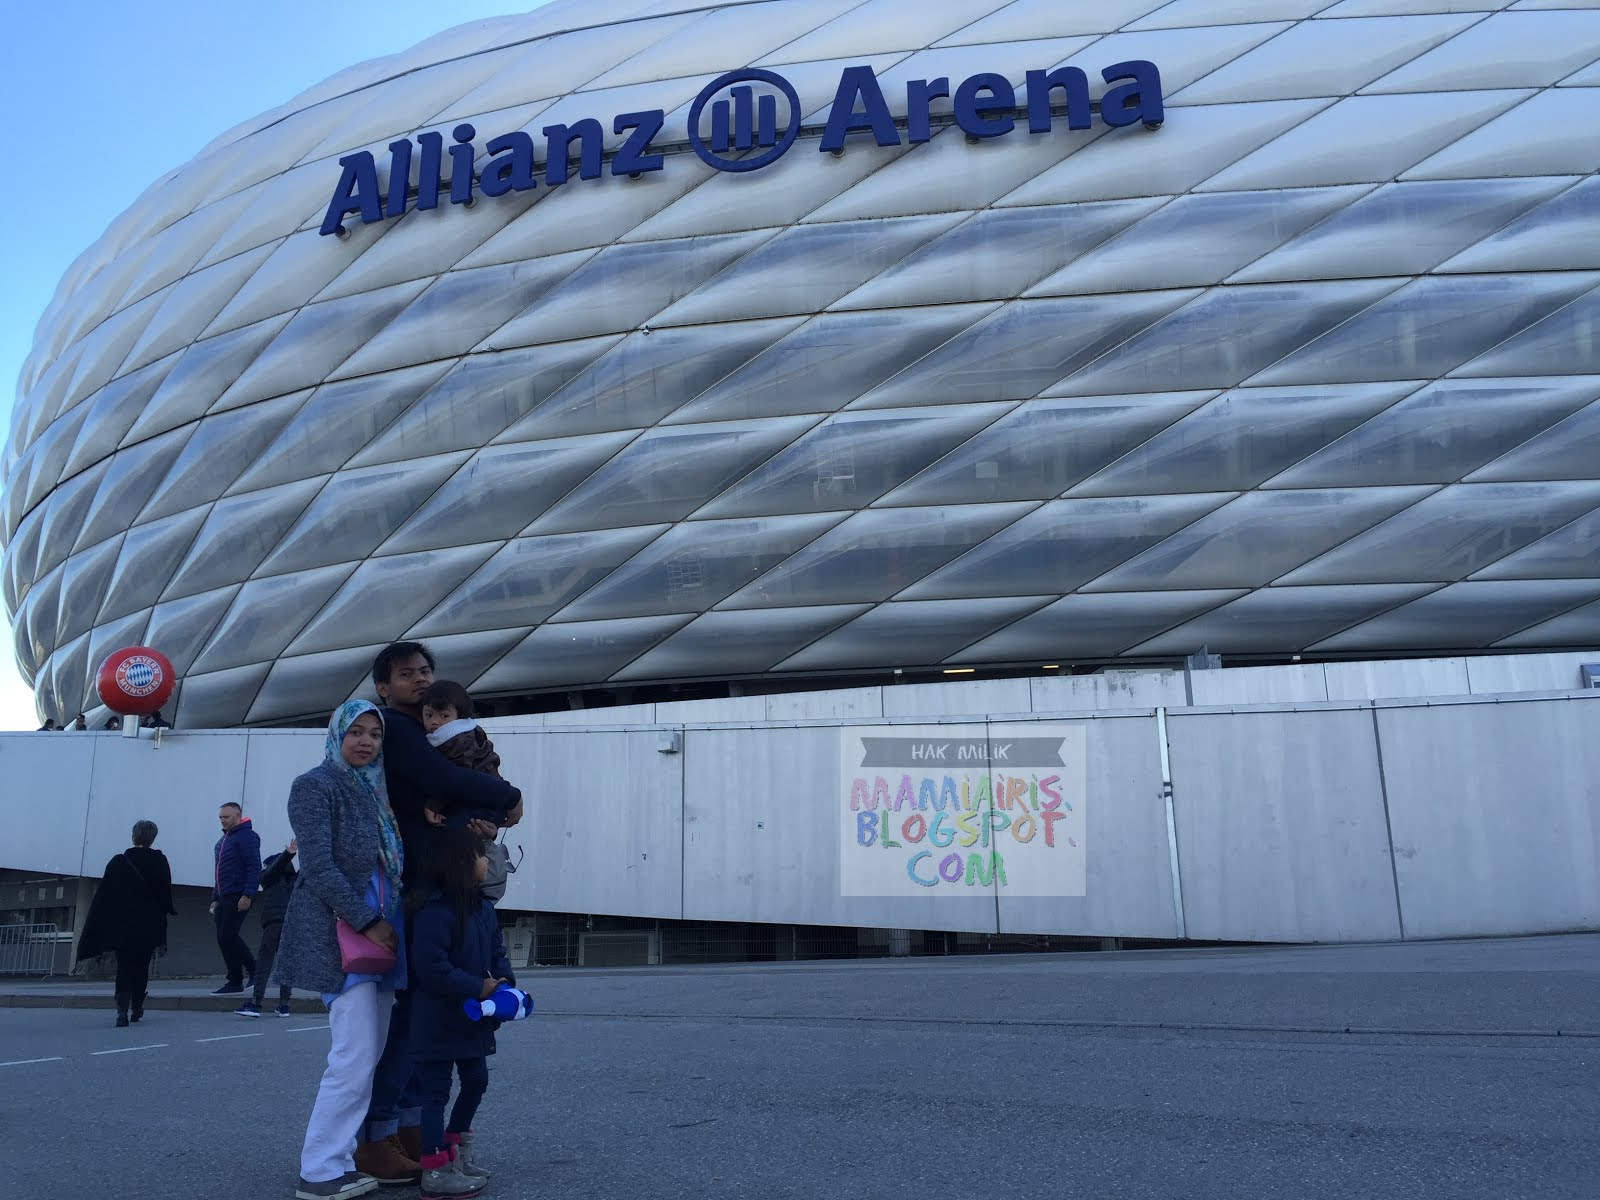 Bayern Munich Stadium